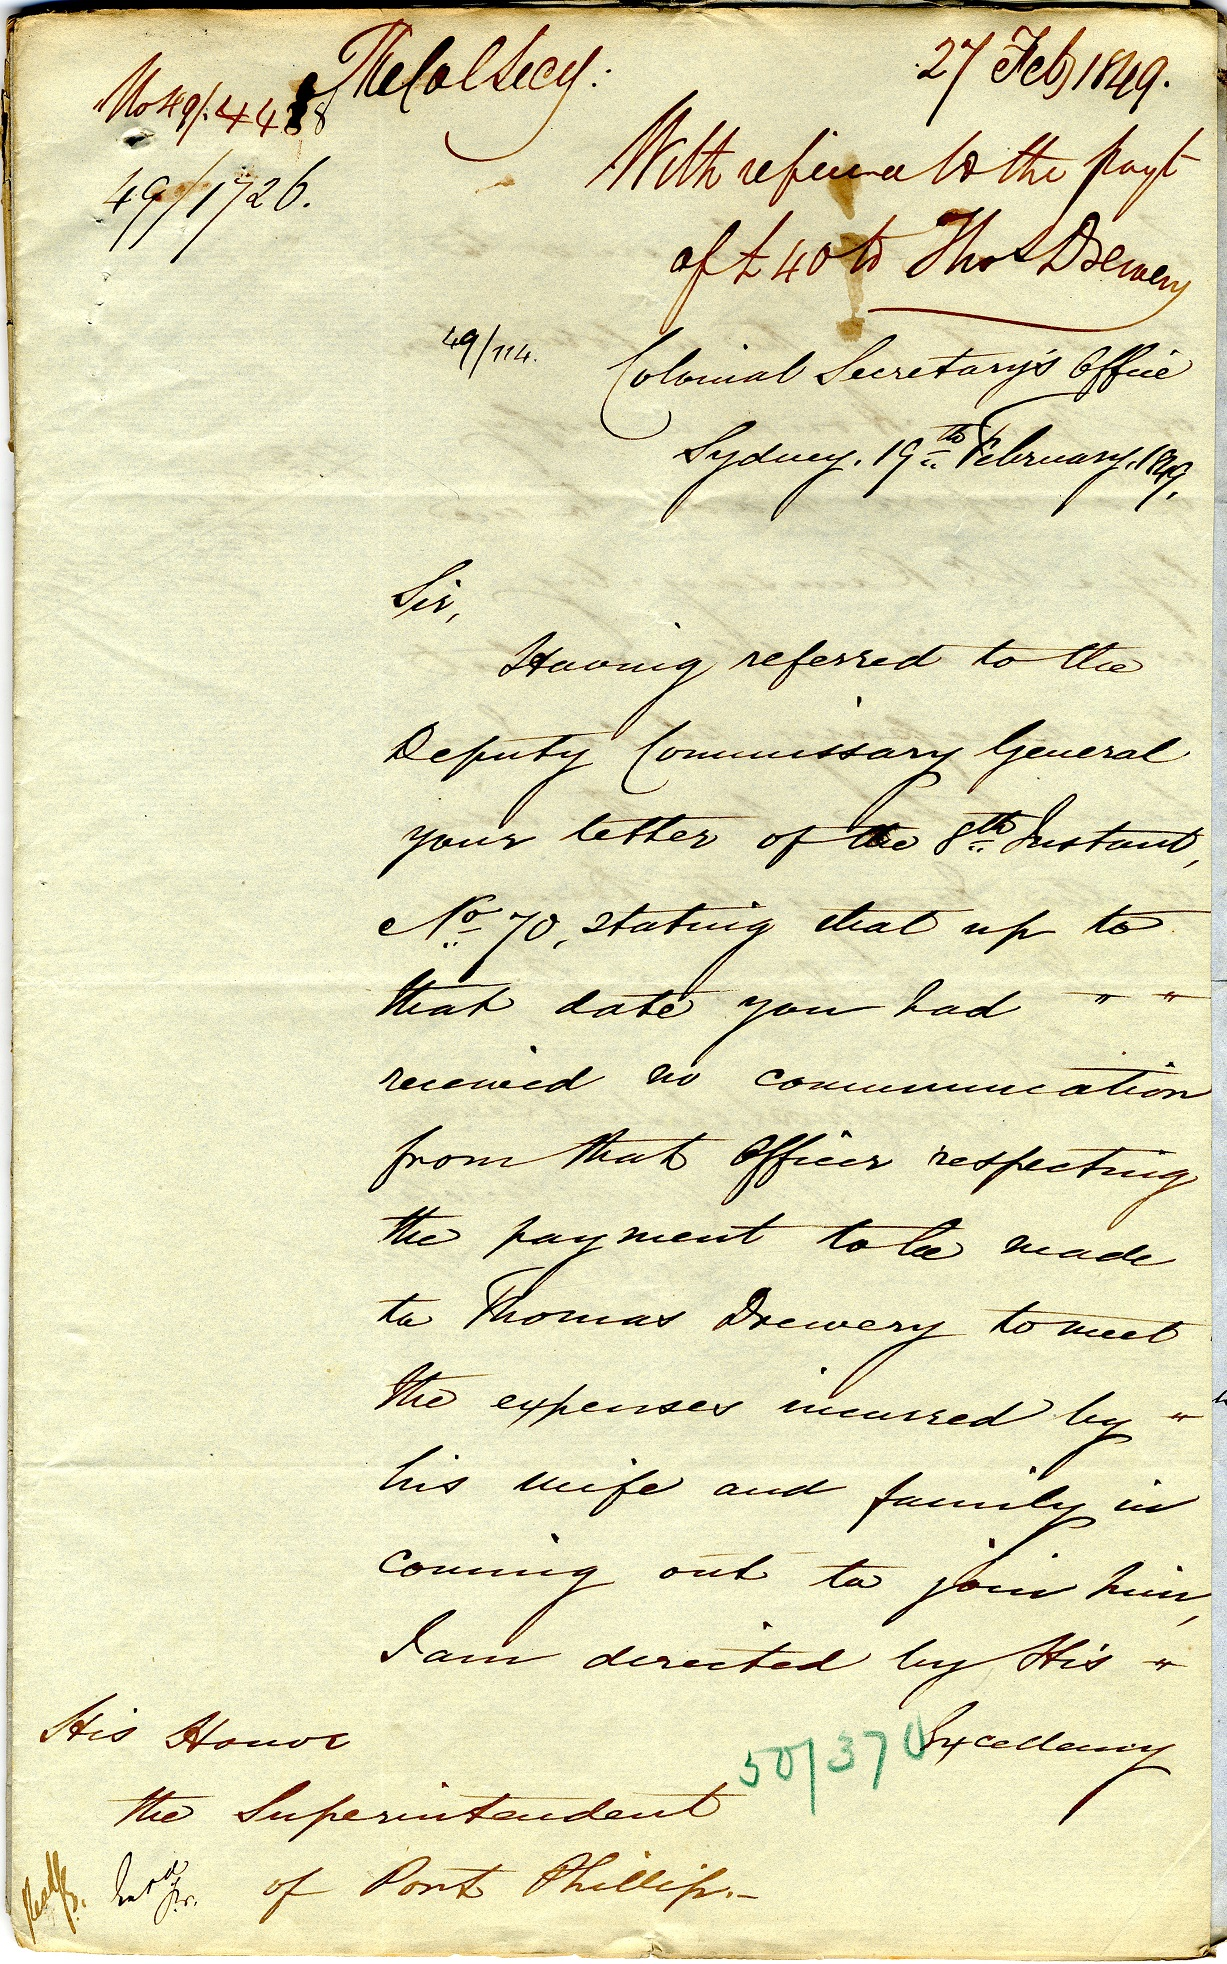 Colonial Secretary, letter to the Superintendent of Port Phillip with reference to the payment of £40 to Thomas Drewery